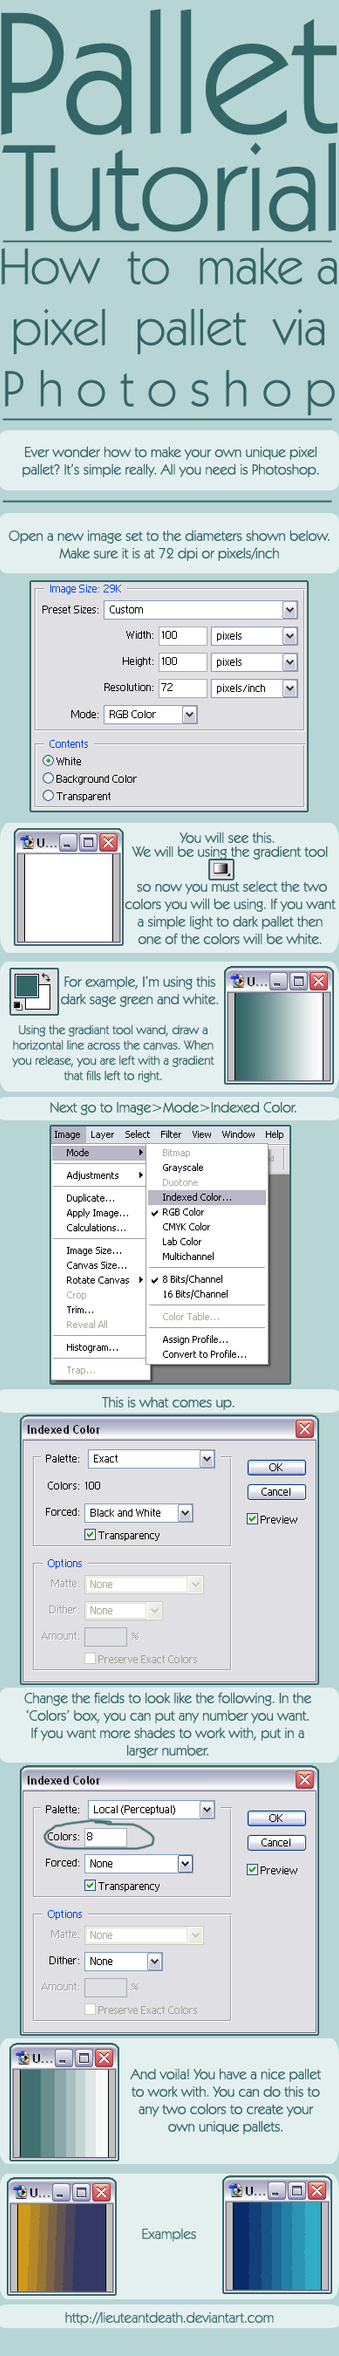 How to Work in the Layers Palette in Adobe Photoshop CS5